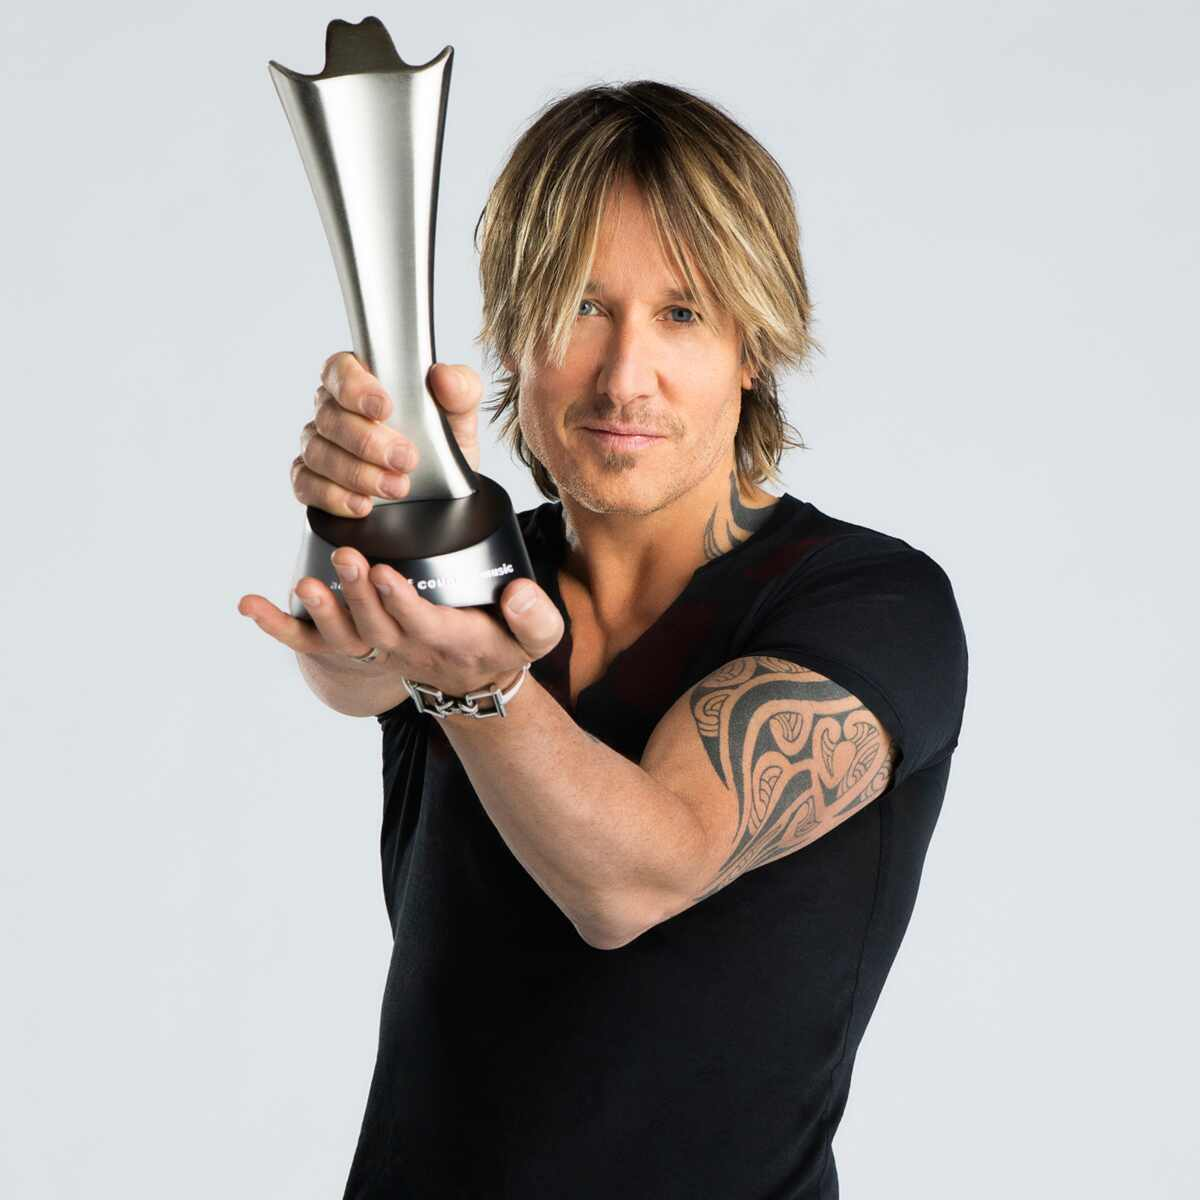 Keith Urban, ACM Host